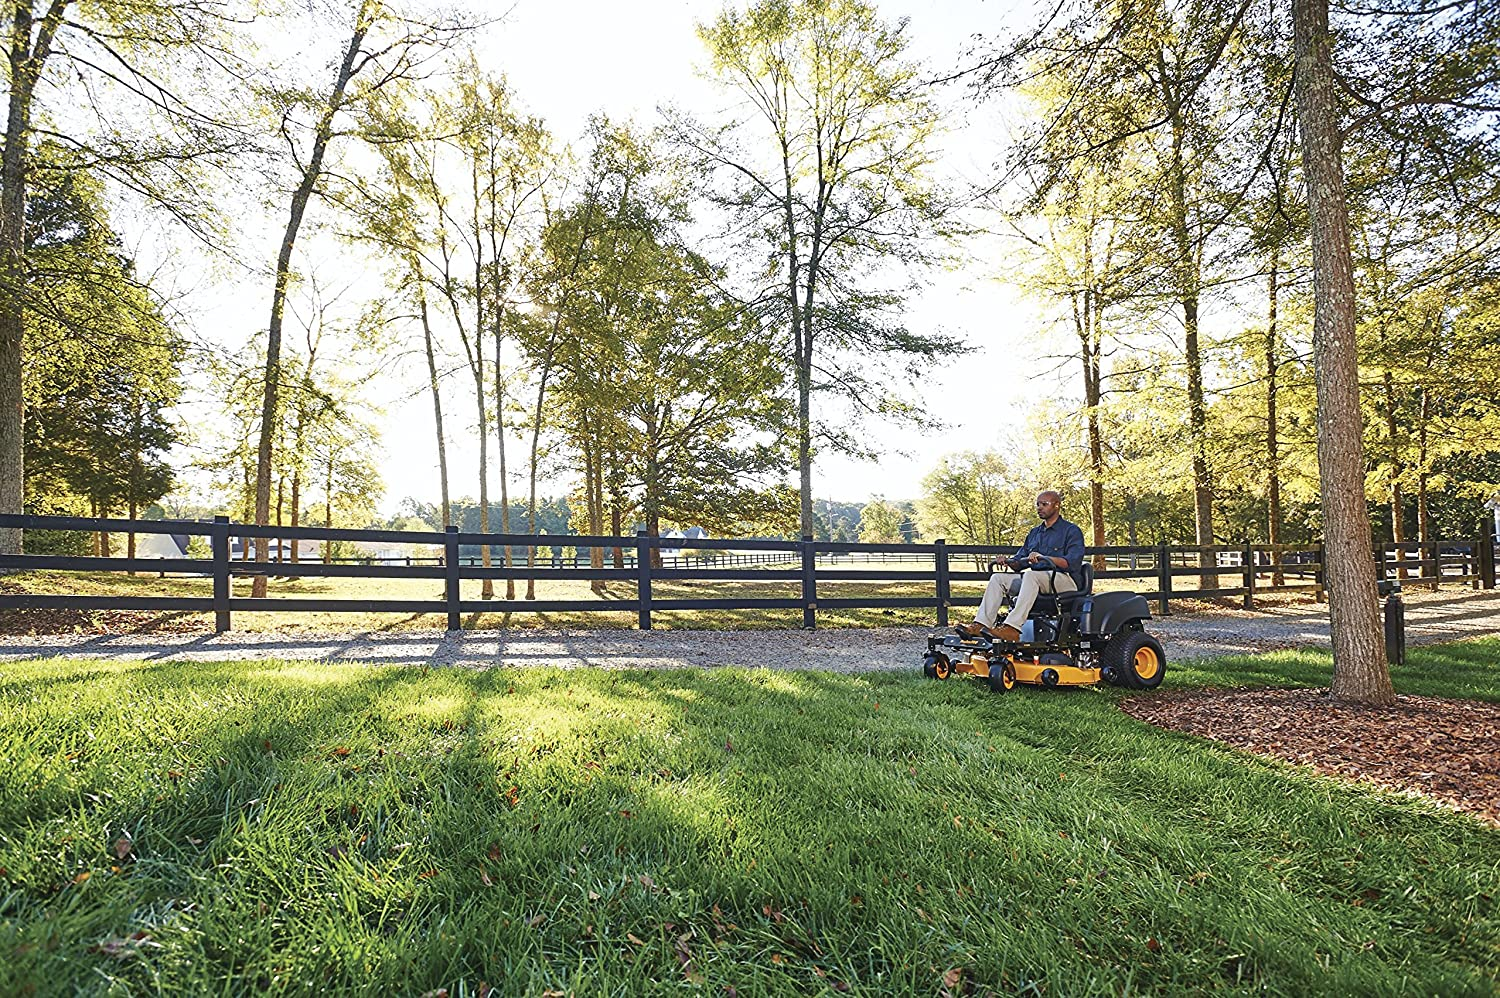 Best Riding Lawn Mower for Small Yards Review